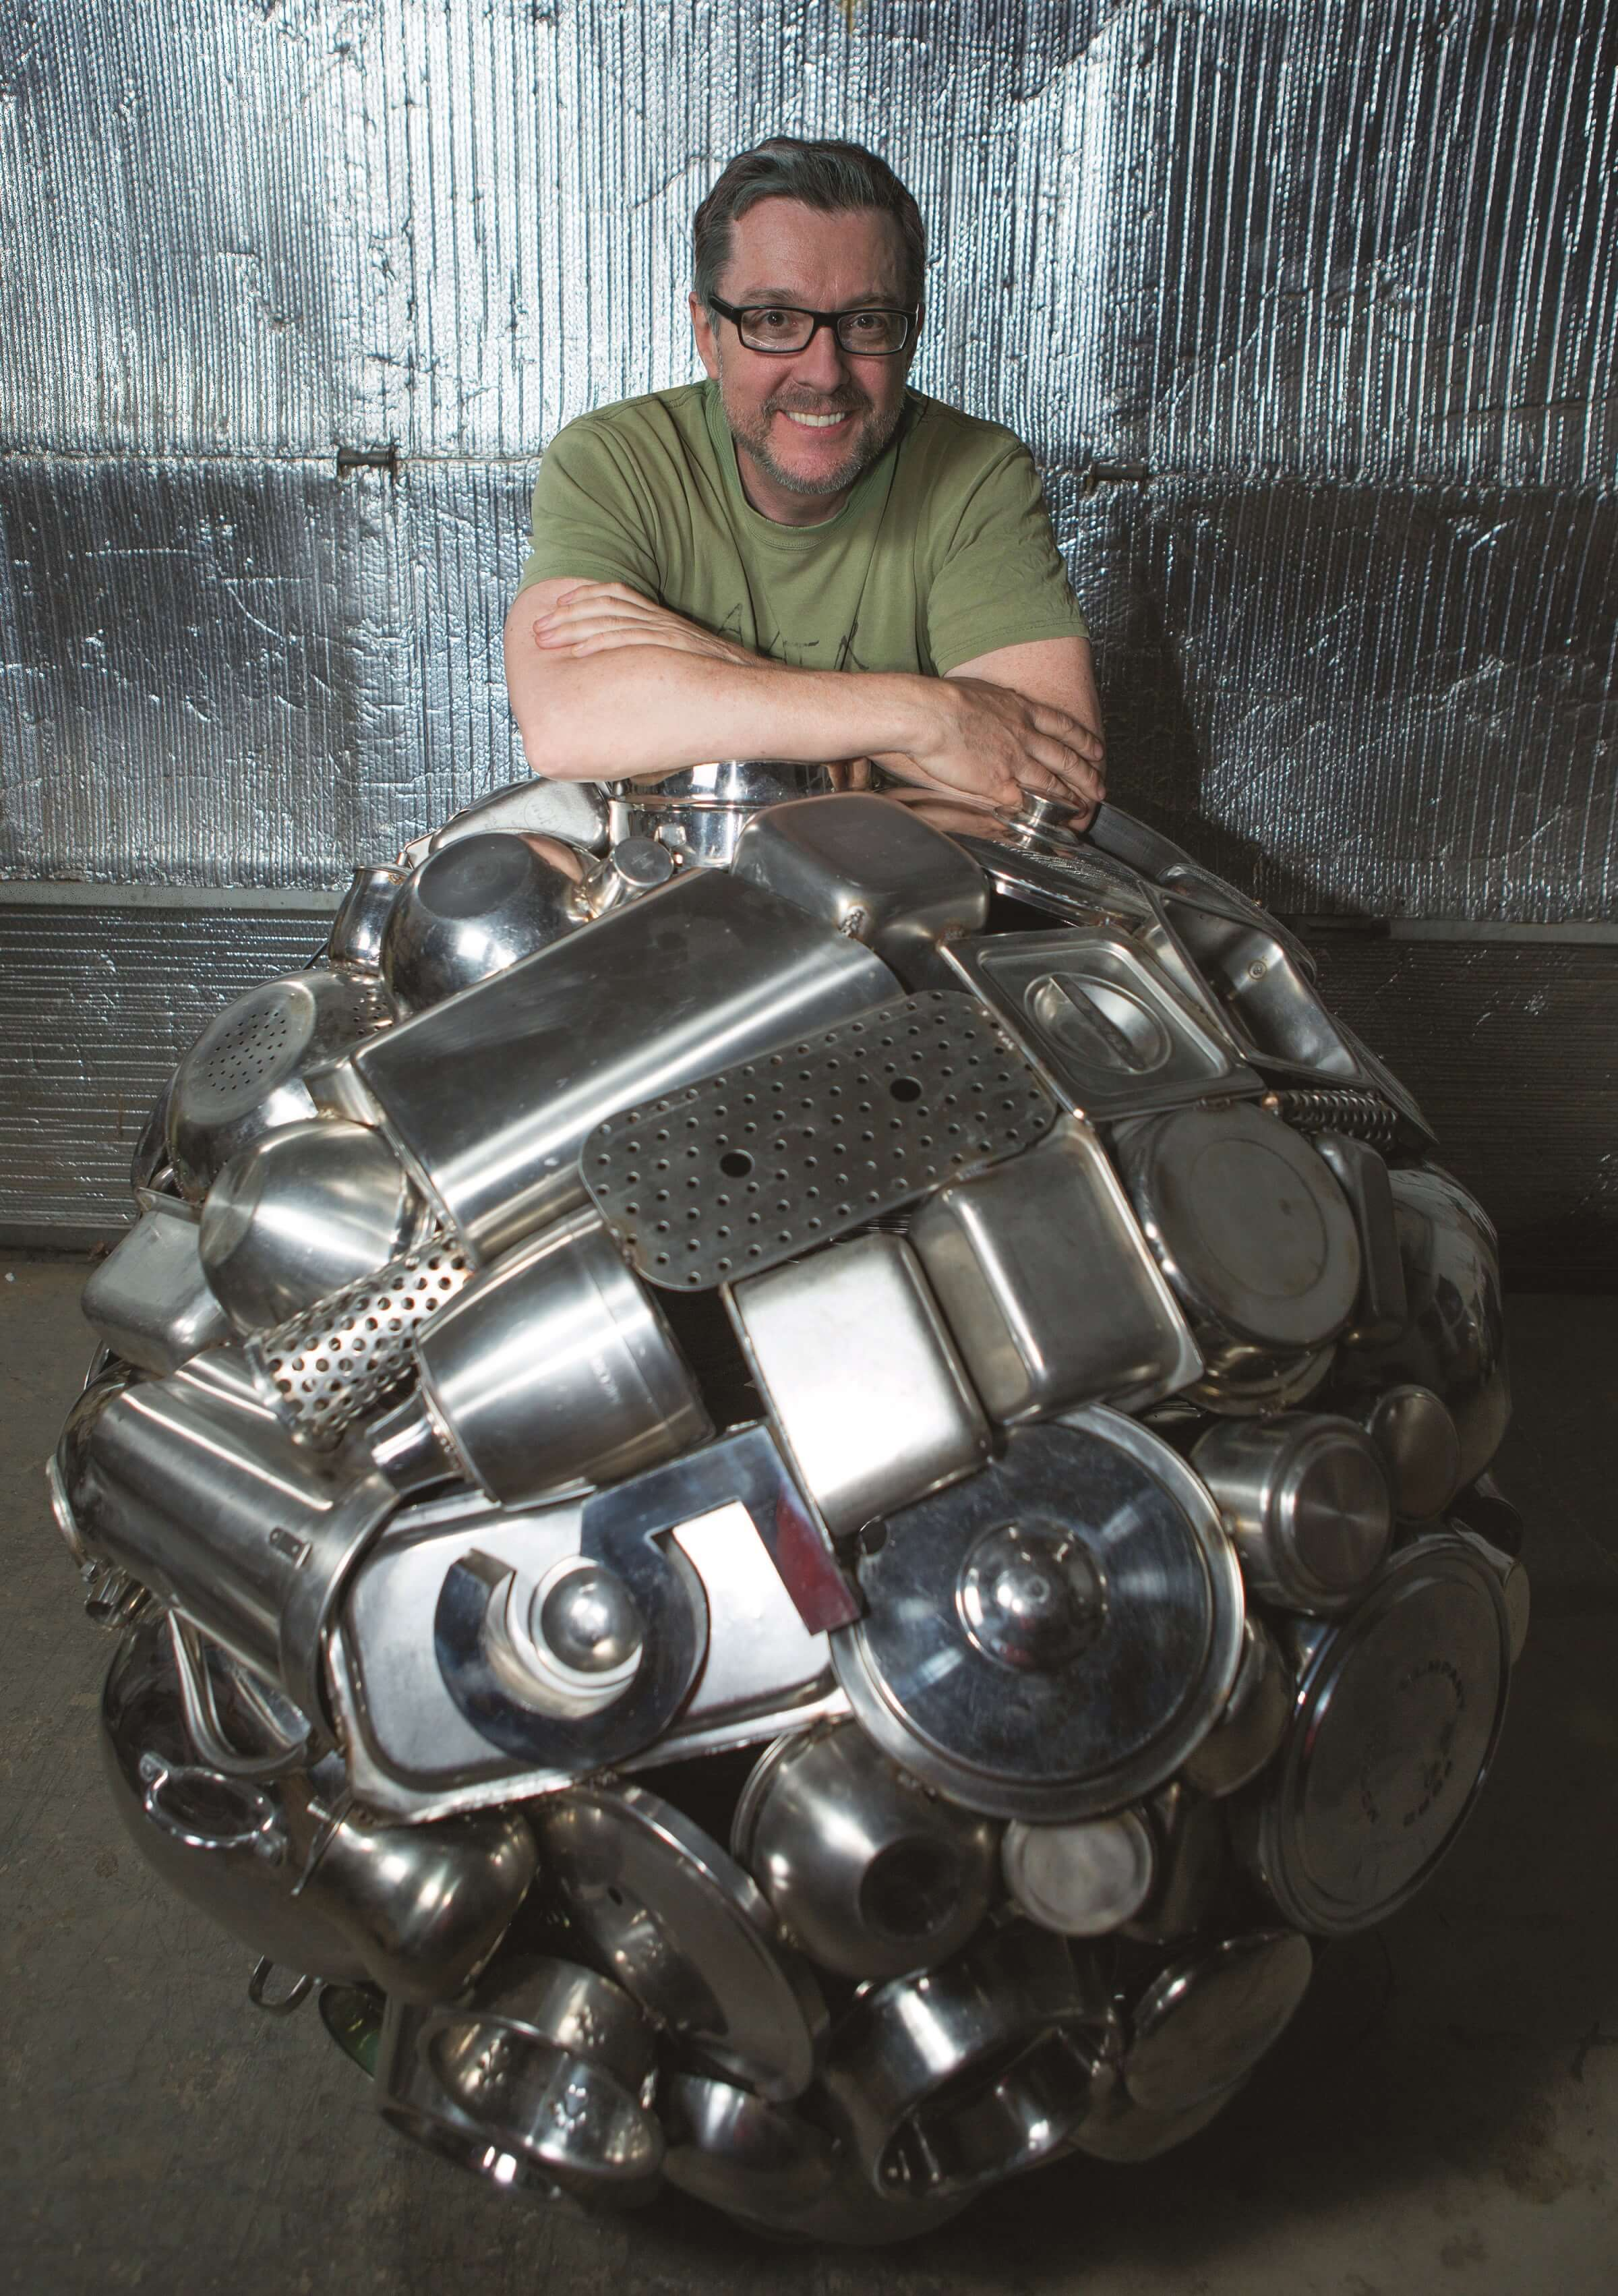 Donald_Gialanella with one of his abandoned objects sculptures